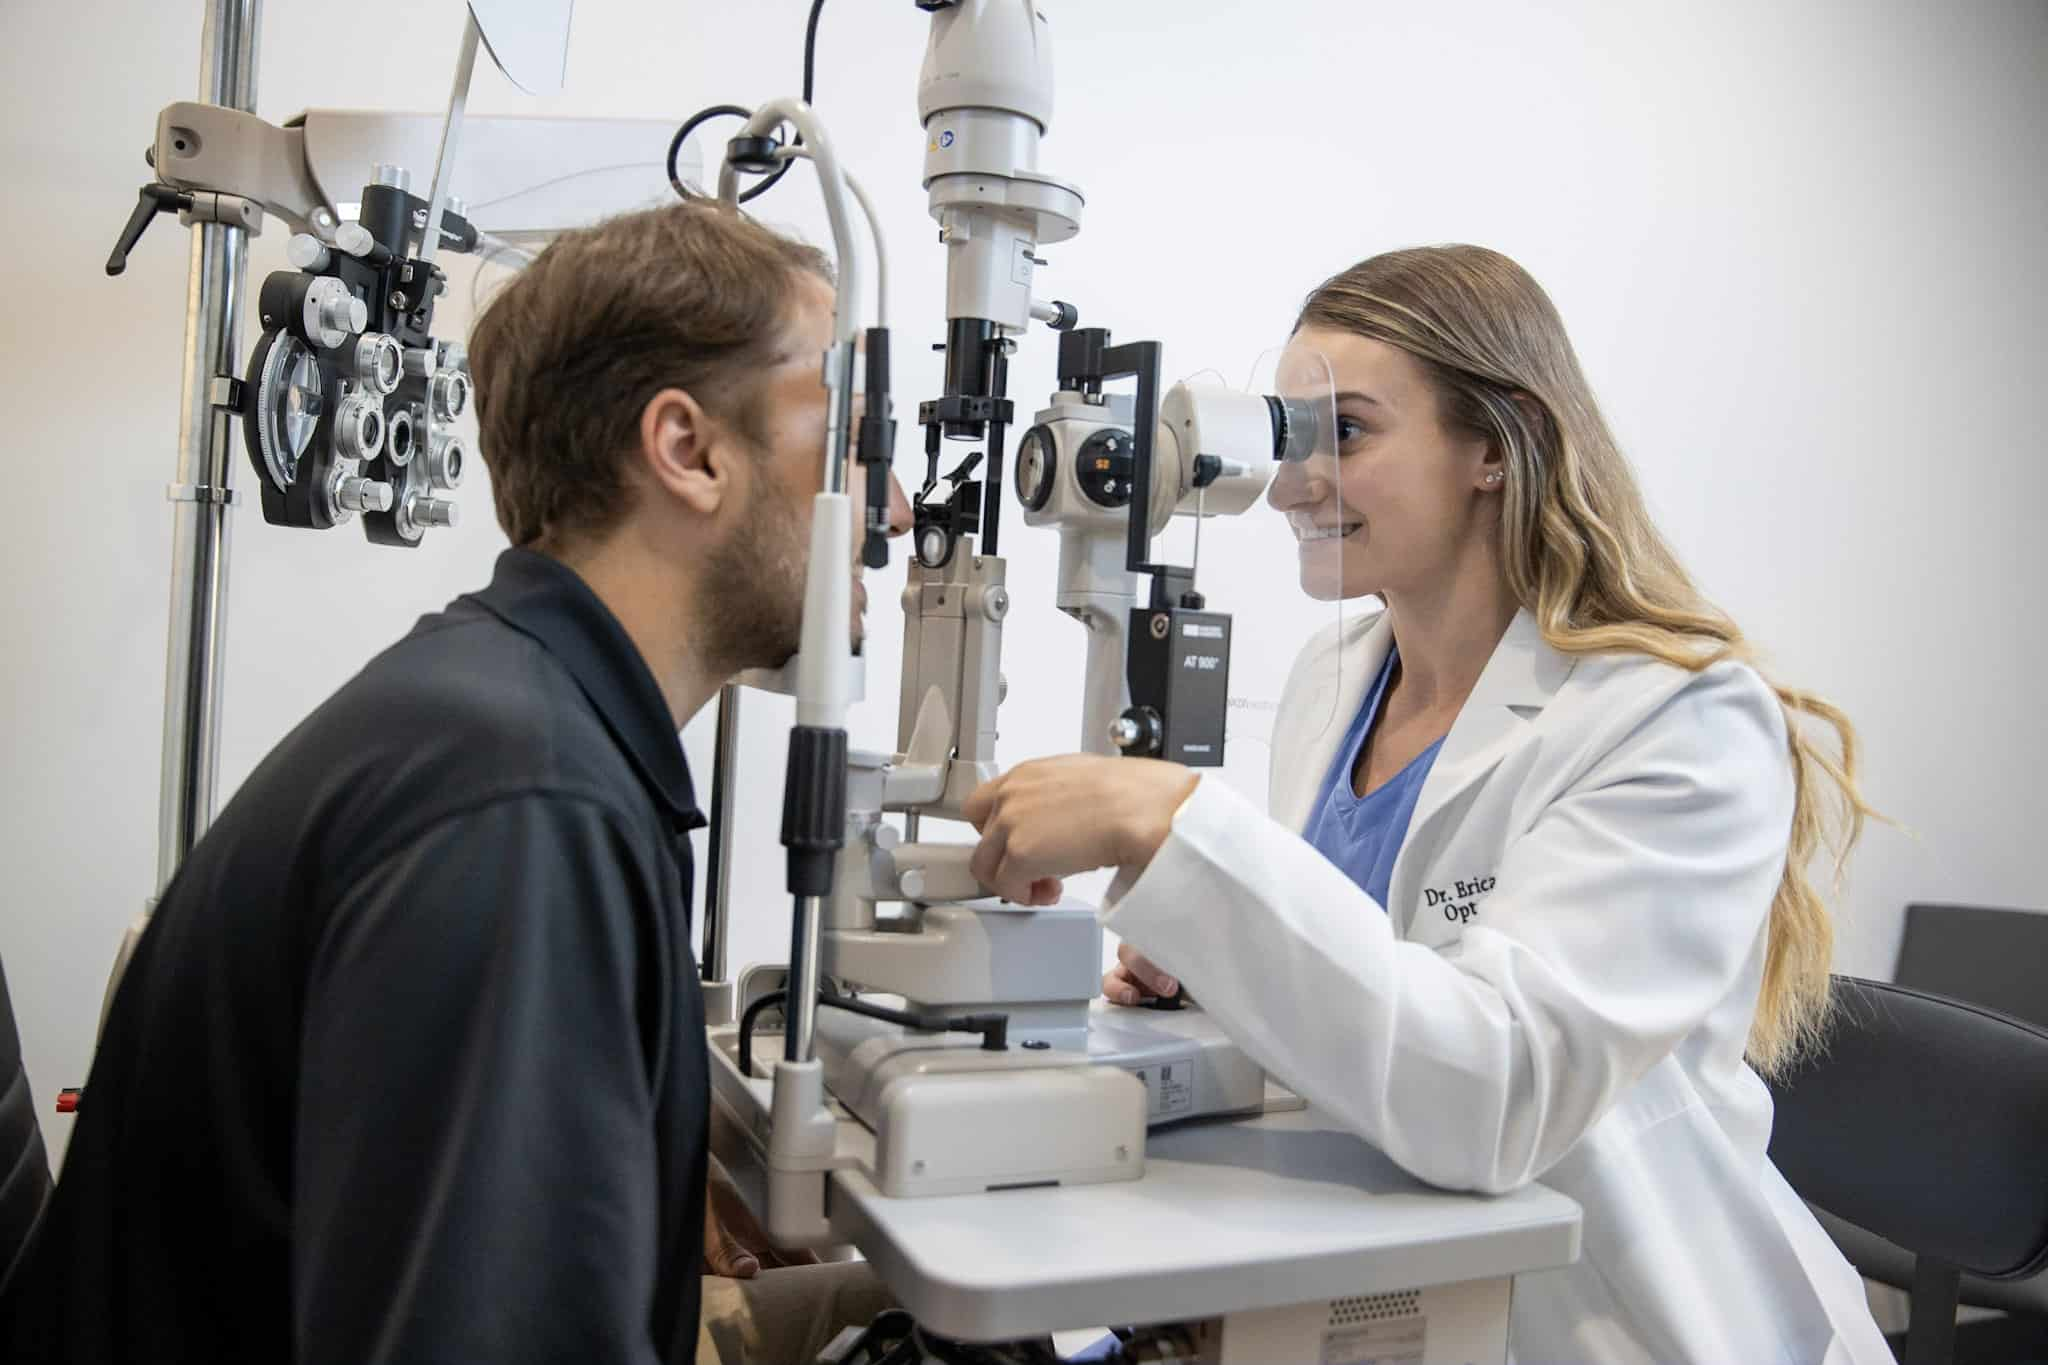 Dr. Erika Stokes of Family Eye Care performing a slit lamp examination on a male patient to examine his eye health.